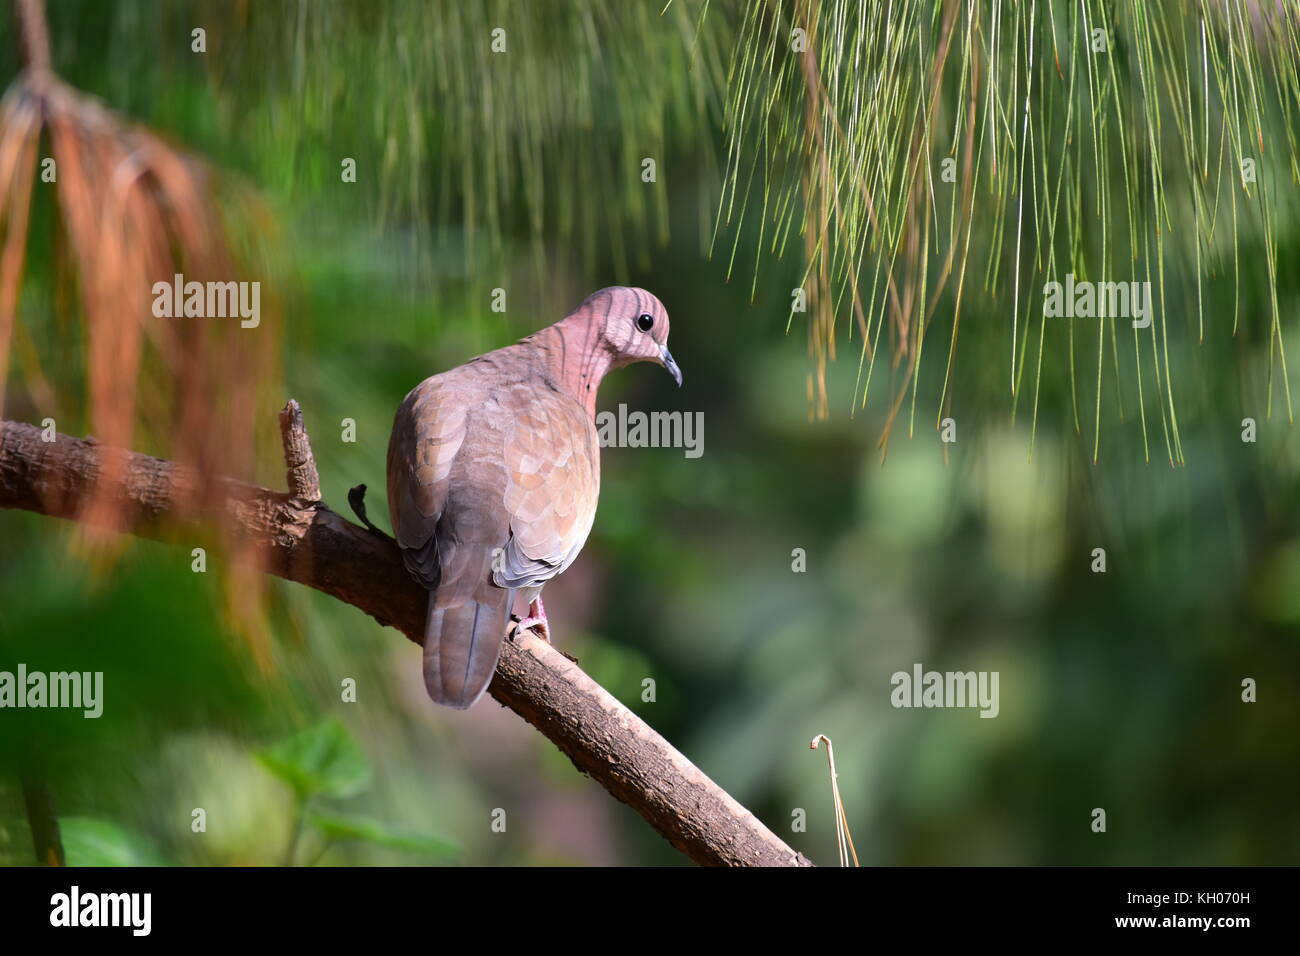 The Laughing Dove or Spilopelia senegalensis perched on a Pine Tree branch. - Stock Image